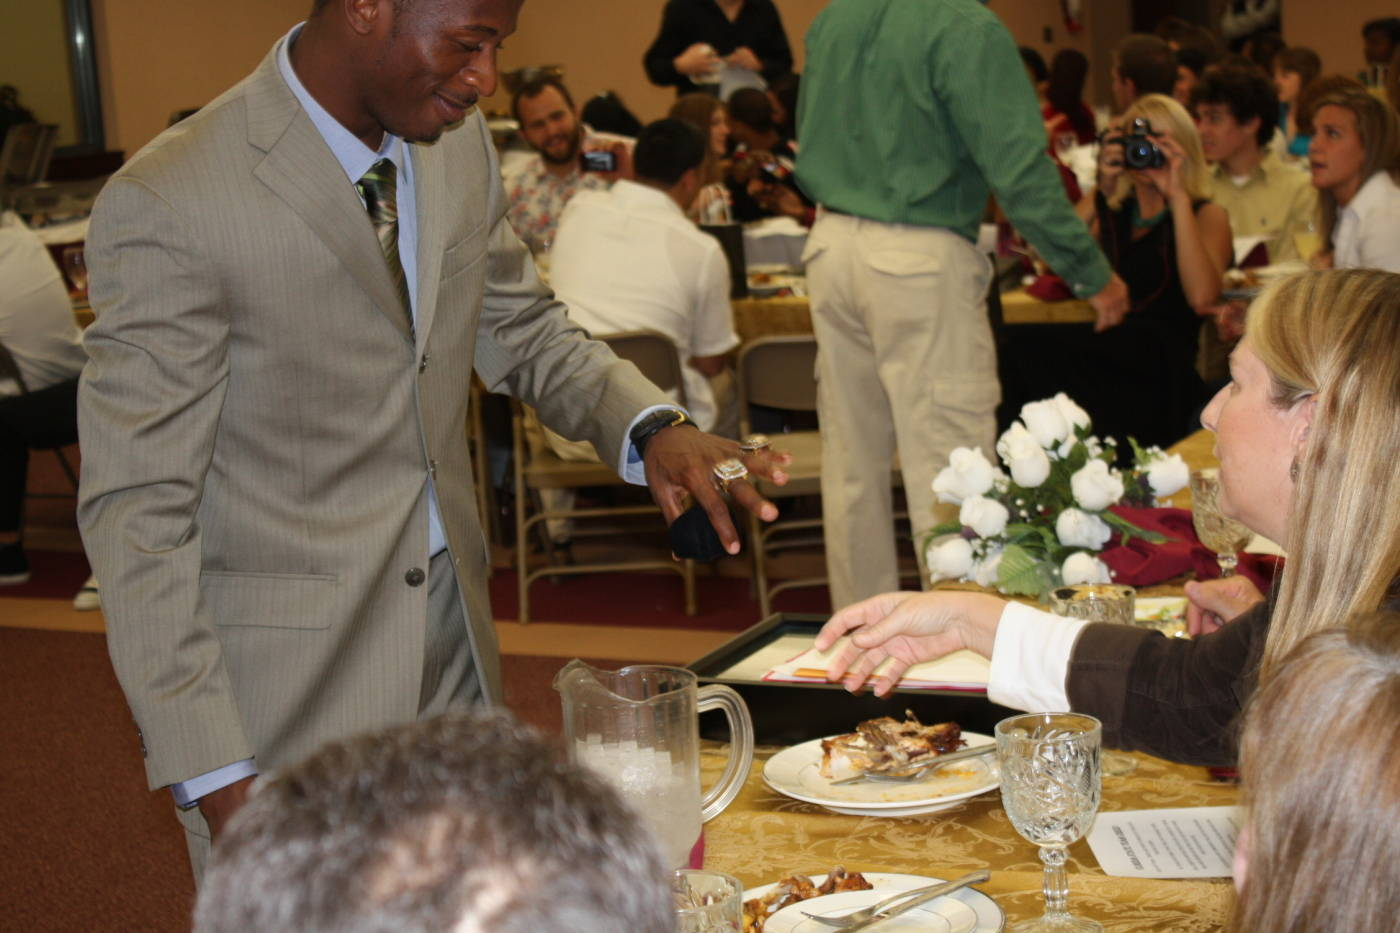 The 2009 Track and Field Ring Ceremony